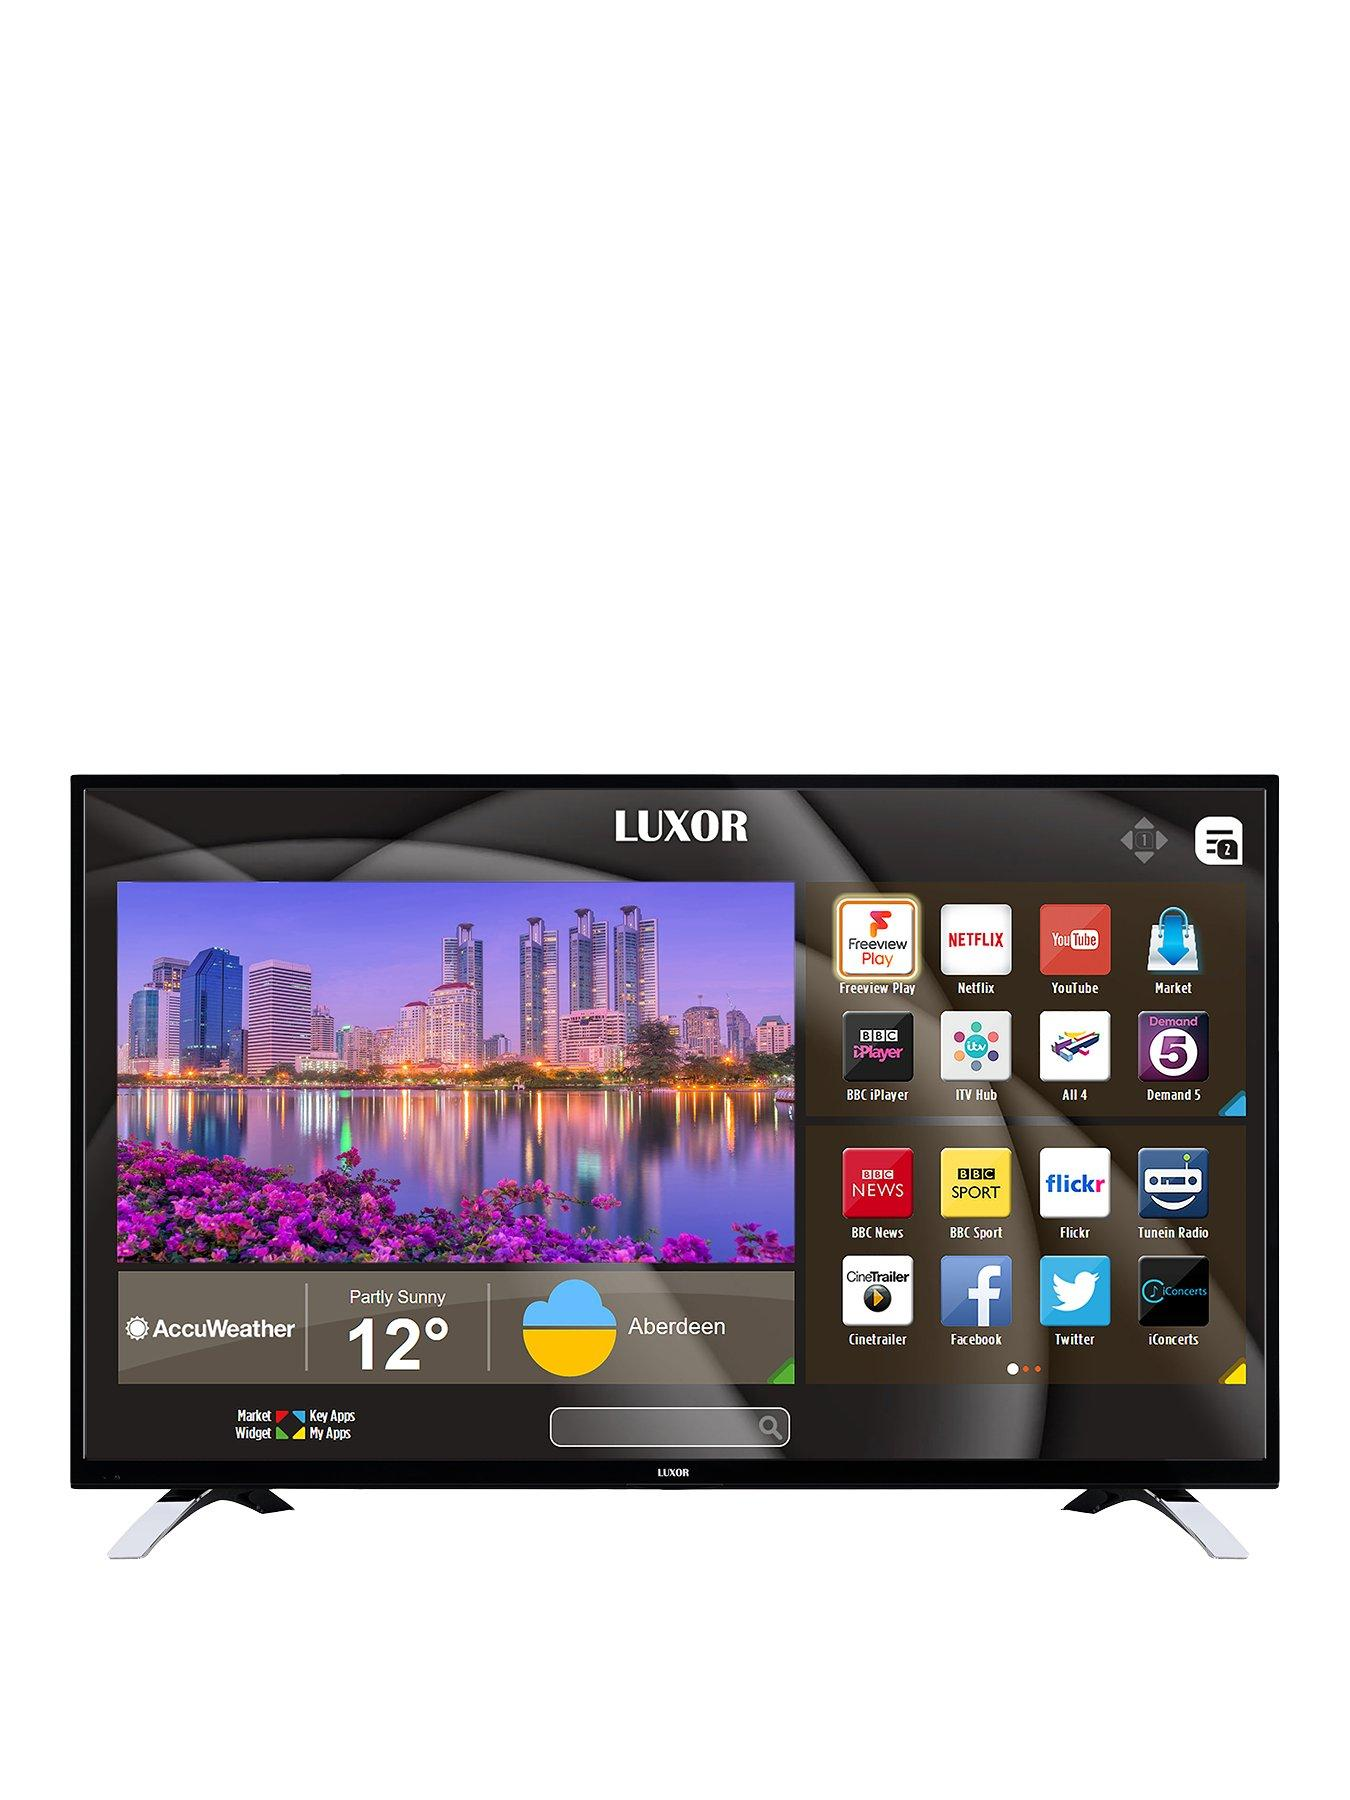 Luxor 55 inch Ultra HD 4K, Freeview Play, LED, Smart TV 51 to TVs | 51-55"|1350|1800|?|31ddddbe2ebfd261e28d32f308ad7ca4|False|UNLIKELY|0.3233742117881775